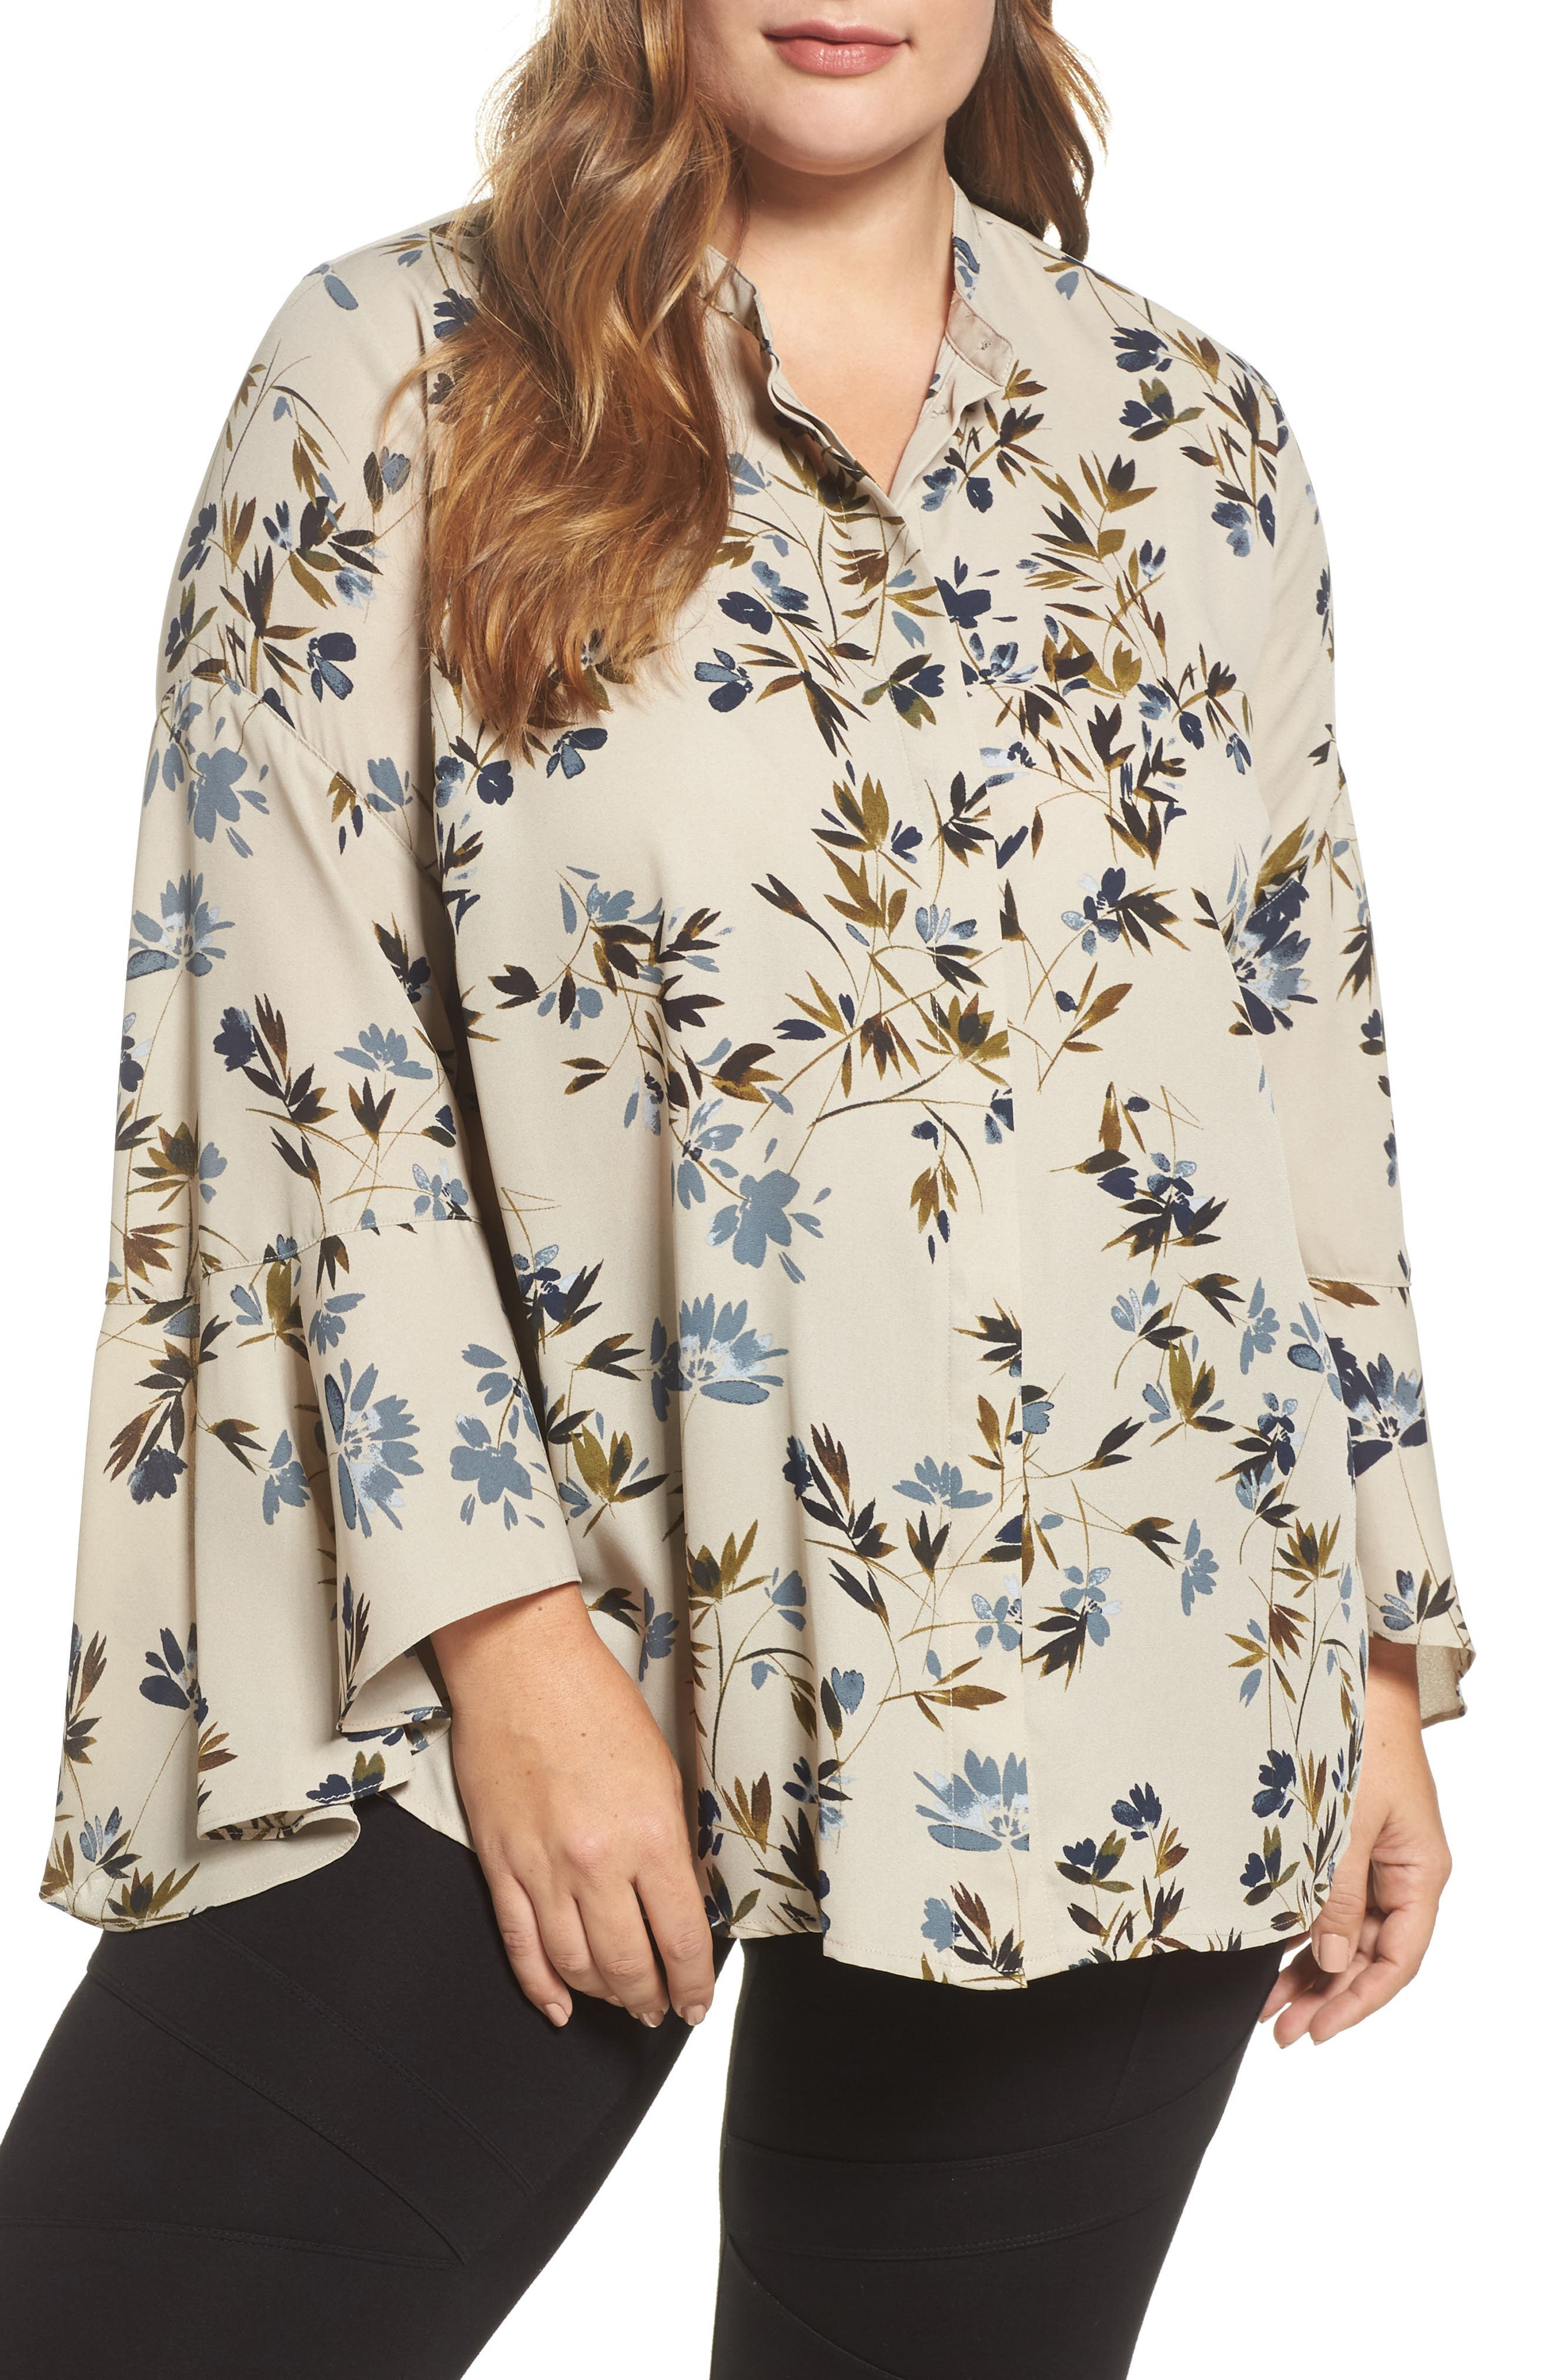 Main Image - Vince Camuto Timeless Bouquet Bell Sleeve Blouse (Plus Size)